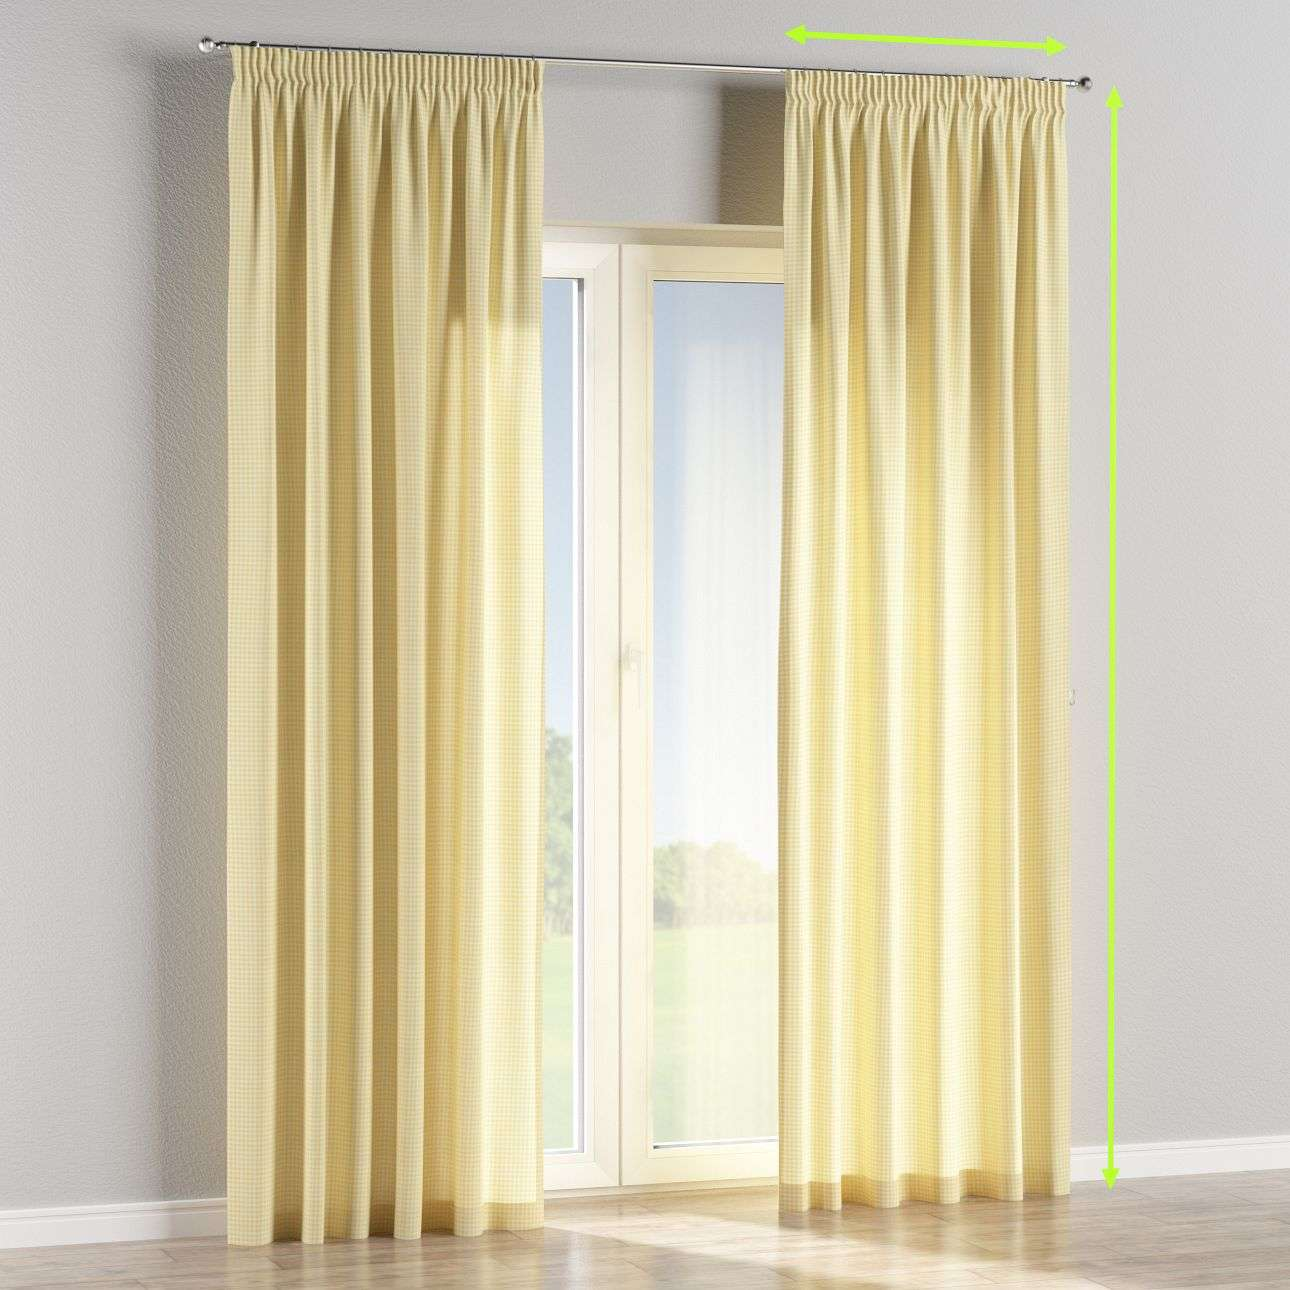 Pencil pleat lined curtains in collection Ashley, fabric: 137-64